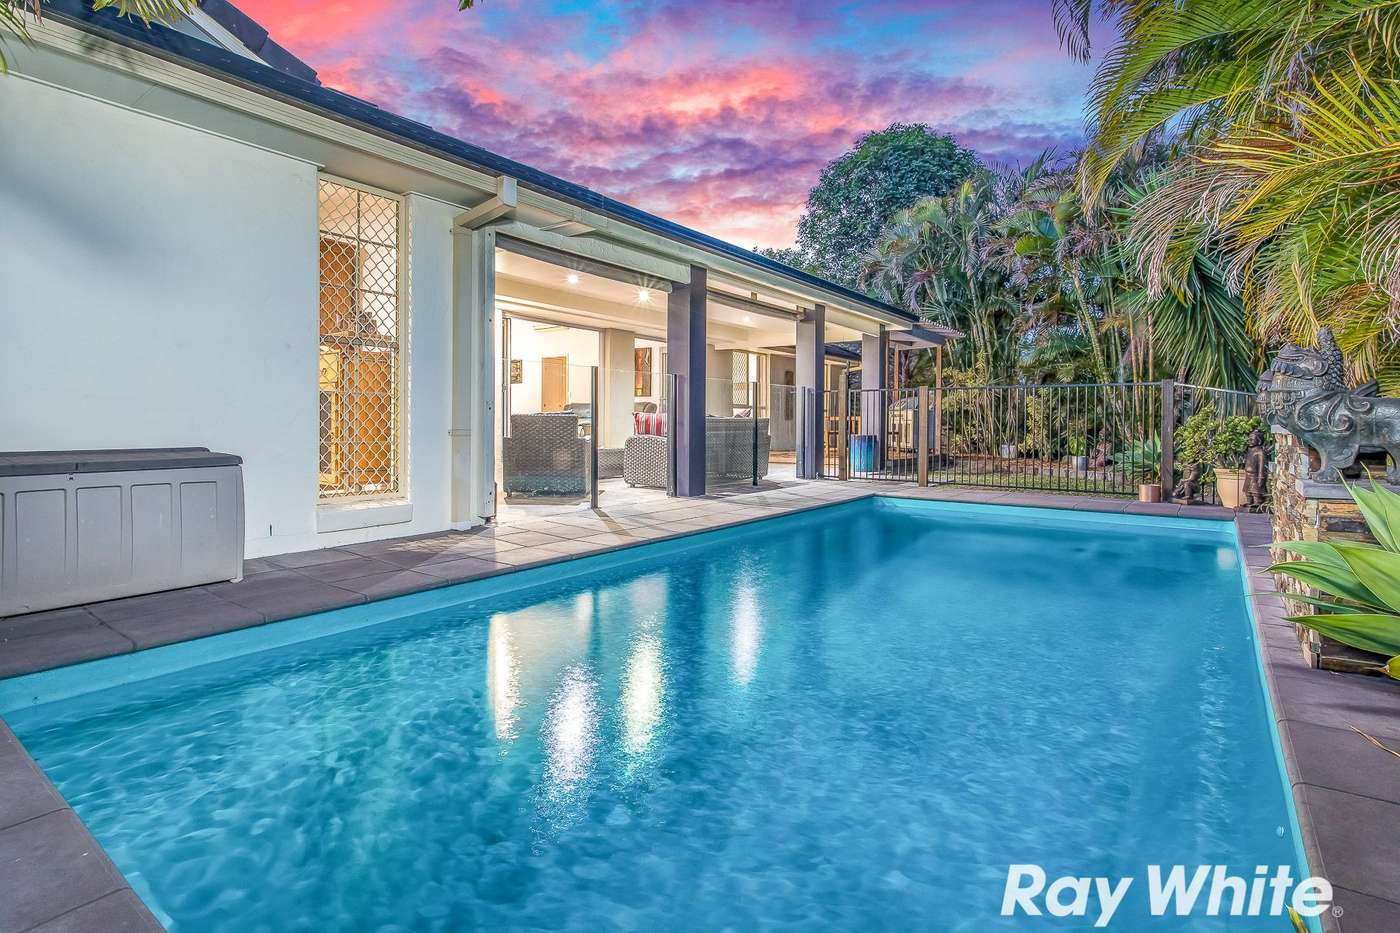 Main view of Homely house listing, 14 Diamantina Court, Murrumba Downs, QLD 4503